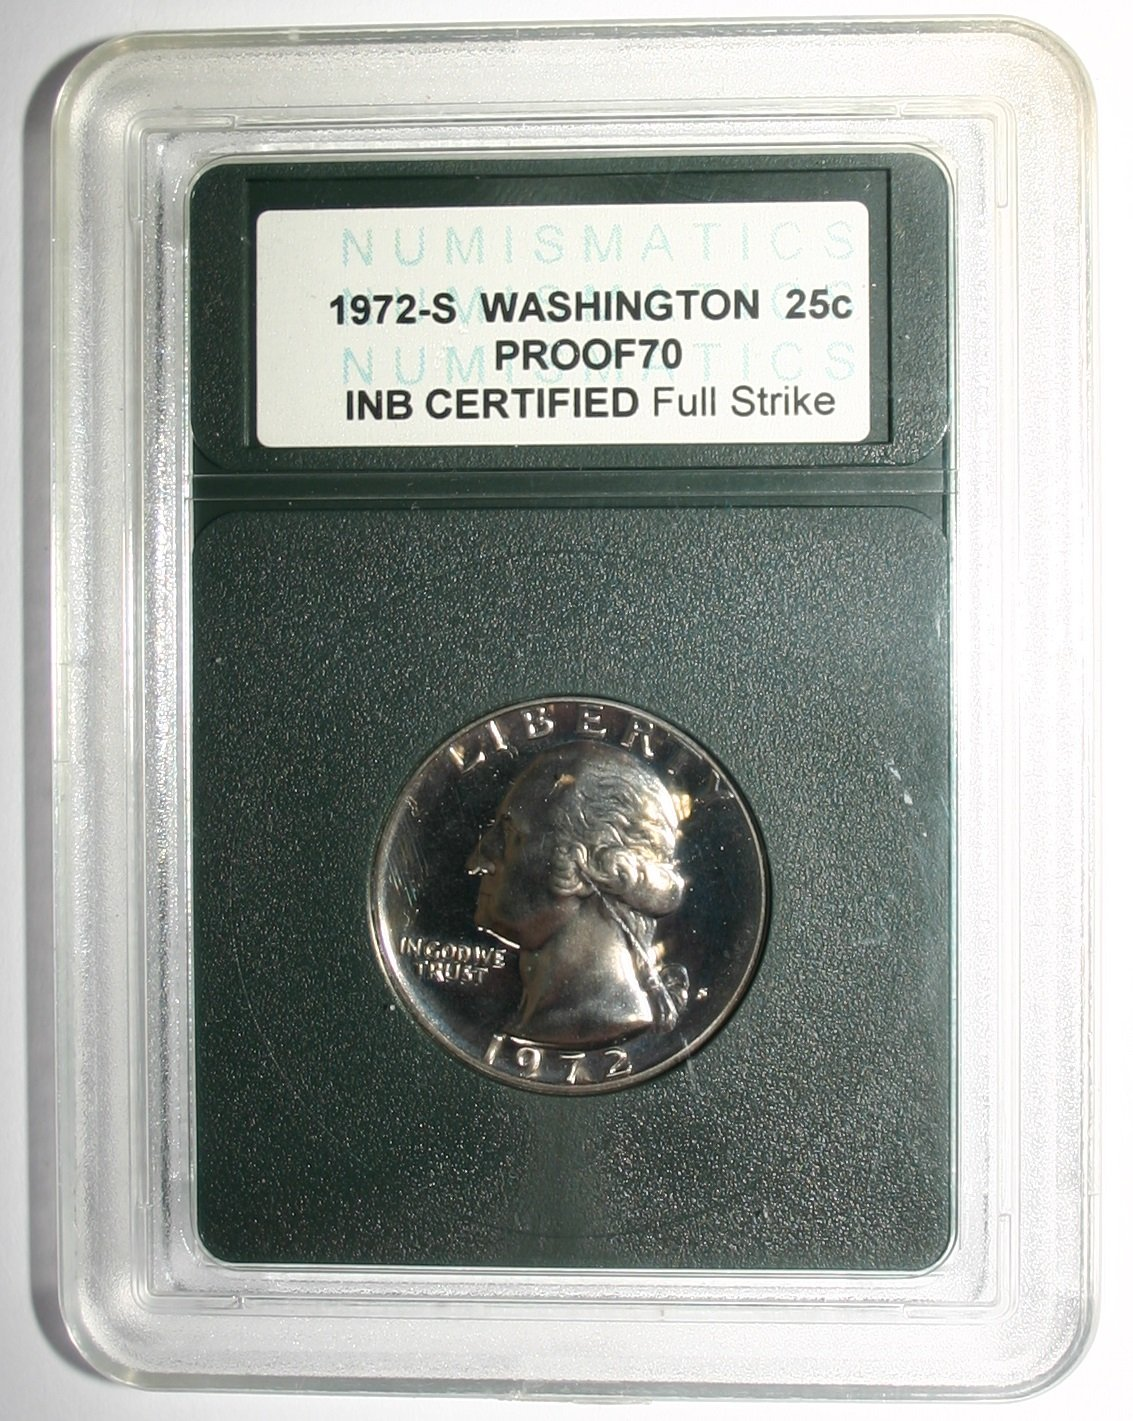 USA 1972-S Washington 25c Liberty Quarter Dollar Proof 70 INB Certified Coin